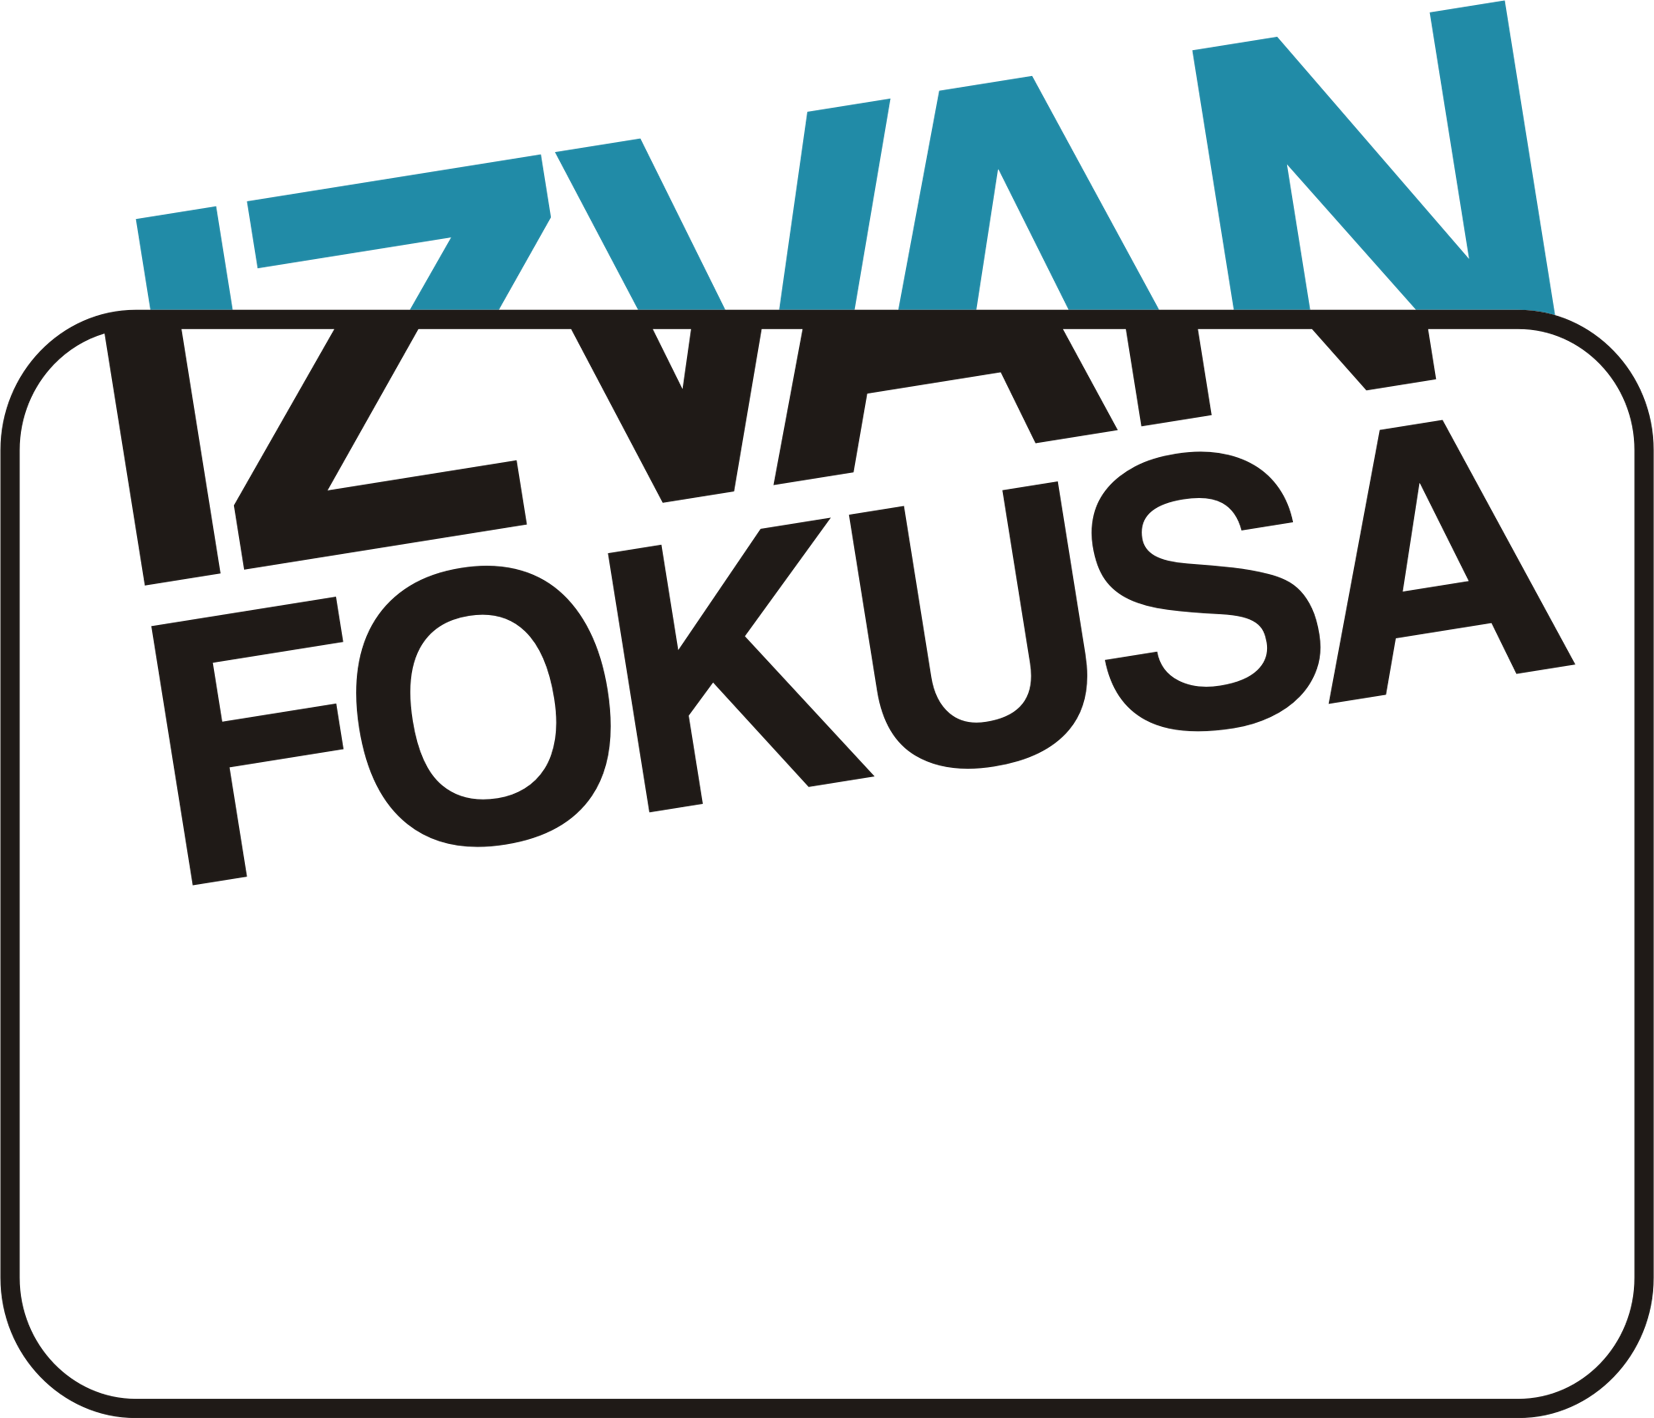 Izvan fokusa